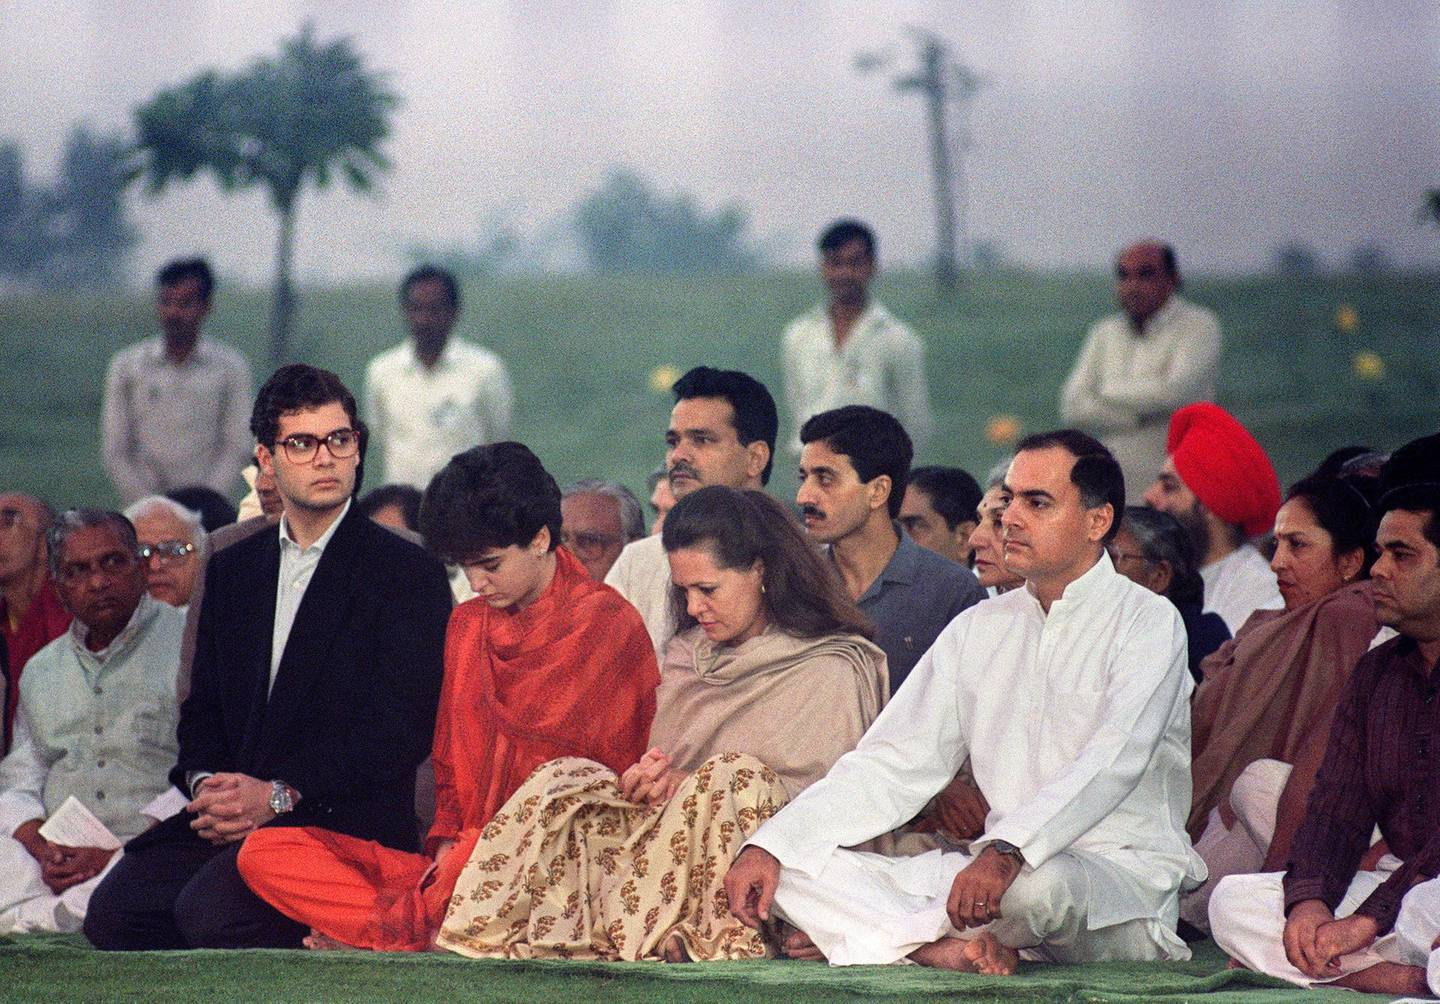 India's Premier Rajiv Gandhi (2nd-R), accompanied by his Italian-born wife Sonia (C) and his daughter Priyanka (2nd-L) and son Rahul (L), pray, on his mother, Indira Gandhi's, cremation site 31 October 1989 in New Delhi. Indira, a Congress party leader, was brutally assassinated by Sikh militants in 1984, a tragedy which thrust power onto Rajiv, who was then a commercial pilot of Indians Airlines. On 21 May 1991, Rajiv Gandhi, then Indian Prime minister, was assassinated by a woman activist allegedly belonging to Sri Lankan Liberation Tigers of Tamil Eelam (LTTE) rebels. Sonia, eleven years after the assassination of Rajiv, is leading a revival of the Congress party and carrying forward the legacy of India's most powerful political dynasty. AFP PHOTO DOUGLAS E. CURRAN (Photo by DOUGLAS E. CURRAN / AFP)